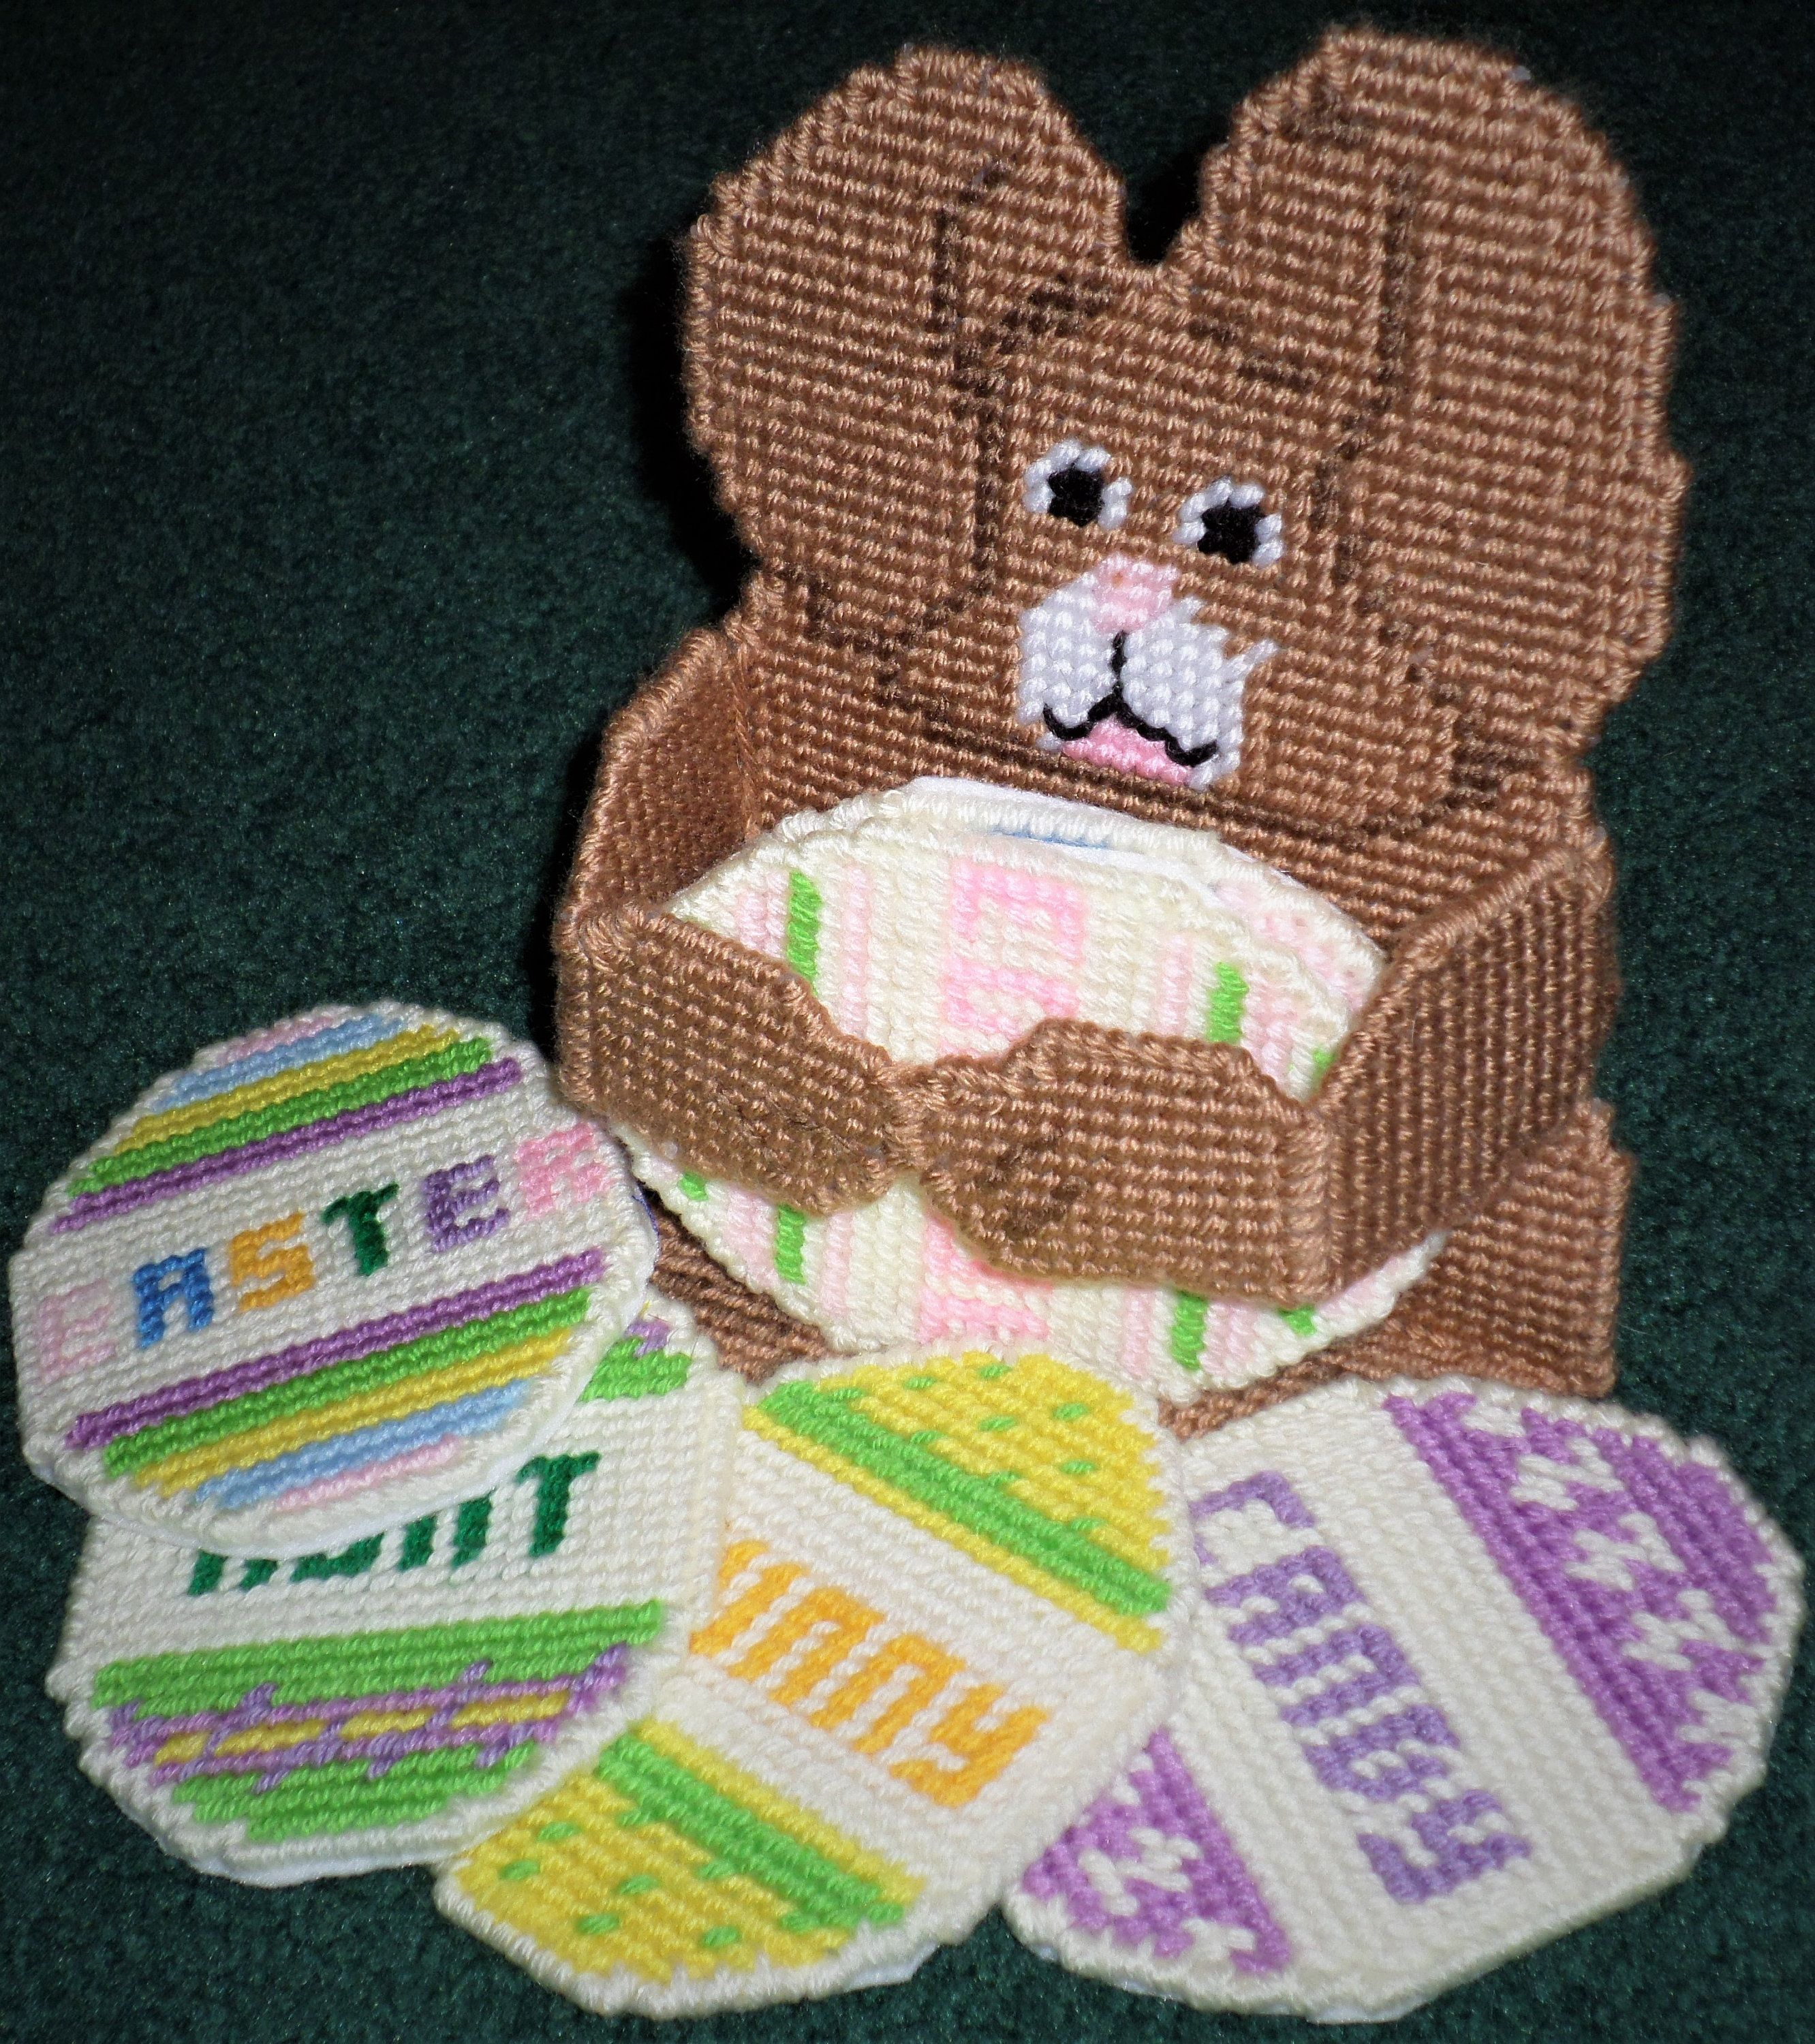 Easter bunny coaster set plastic canvas easter coaster gift set easter bunny coaster set plastic canvas easter coaster gift set easter hostess gift plastic canvas coaster gift sets easter coasters negle Gallery